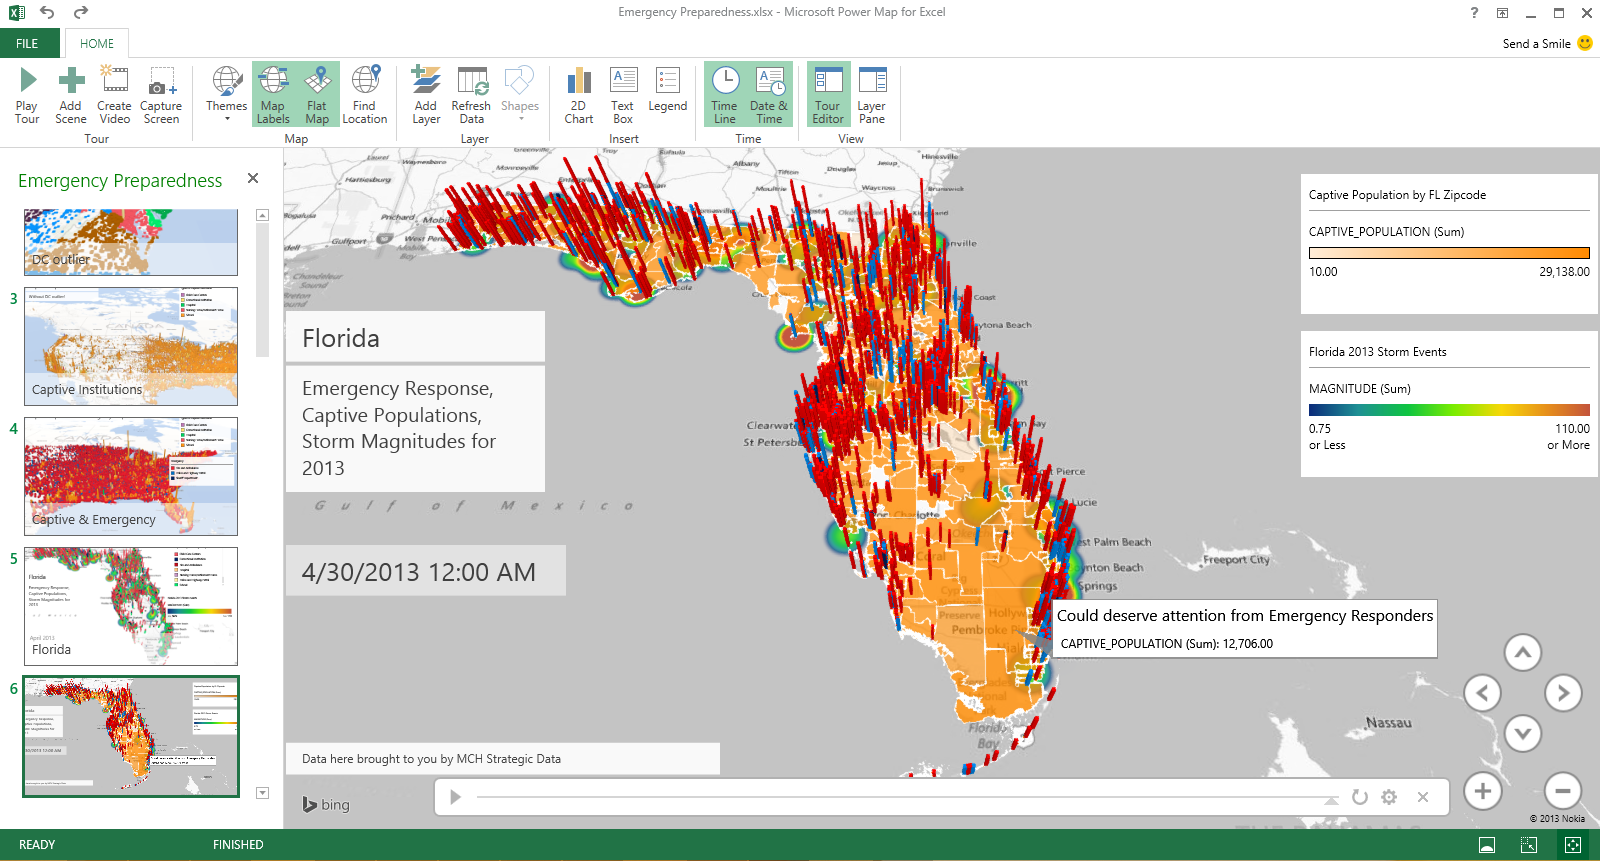 Ediblewildsus  Outstanding Power Map For Excel Now Generally Available Automatically Updated  With Magnificent Power Map For Excel Now Generally Available Automatically Updated For Office  With Astonishing How To Create A Monthly Budget In Excel Also Free Excel Download For Windows  In Addition Excel Test Prep Review And Insinkerator Evolution Excel Review As Well As Employee Database Excel Additionally Adding Two Cells In Excel From Powerbimicrosoftcom With Ediblewildsus  Magnificent Power Map For Excel Now Generally Available Automatically Updated  With Astonishing Power Map For Excel Now Generally Available Automatically Updated For Office  And Outstanding How To Create A Monthly Budget In Excel Also Free Excel Download For Windows  In Addition Excel Test Prep Review From Powerbimicrosoftcom